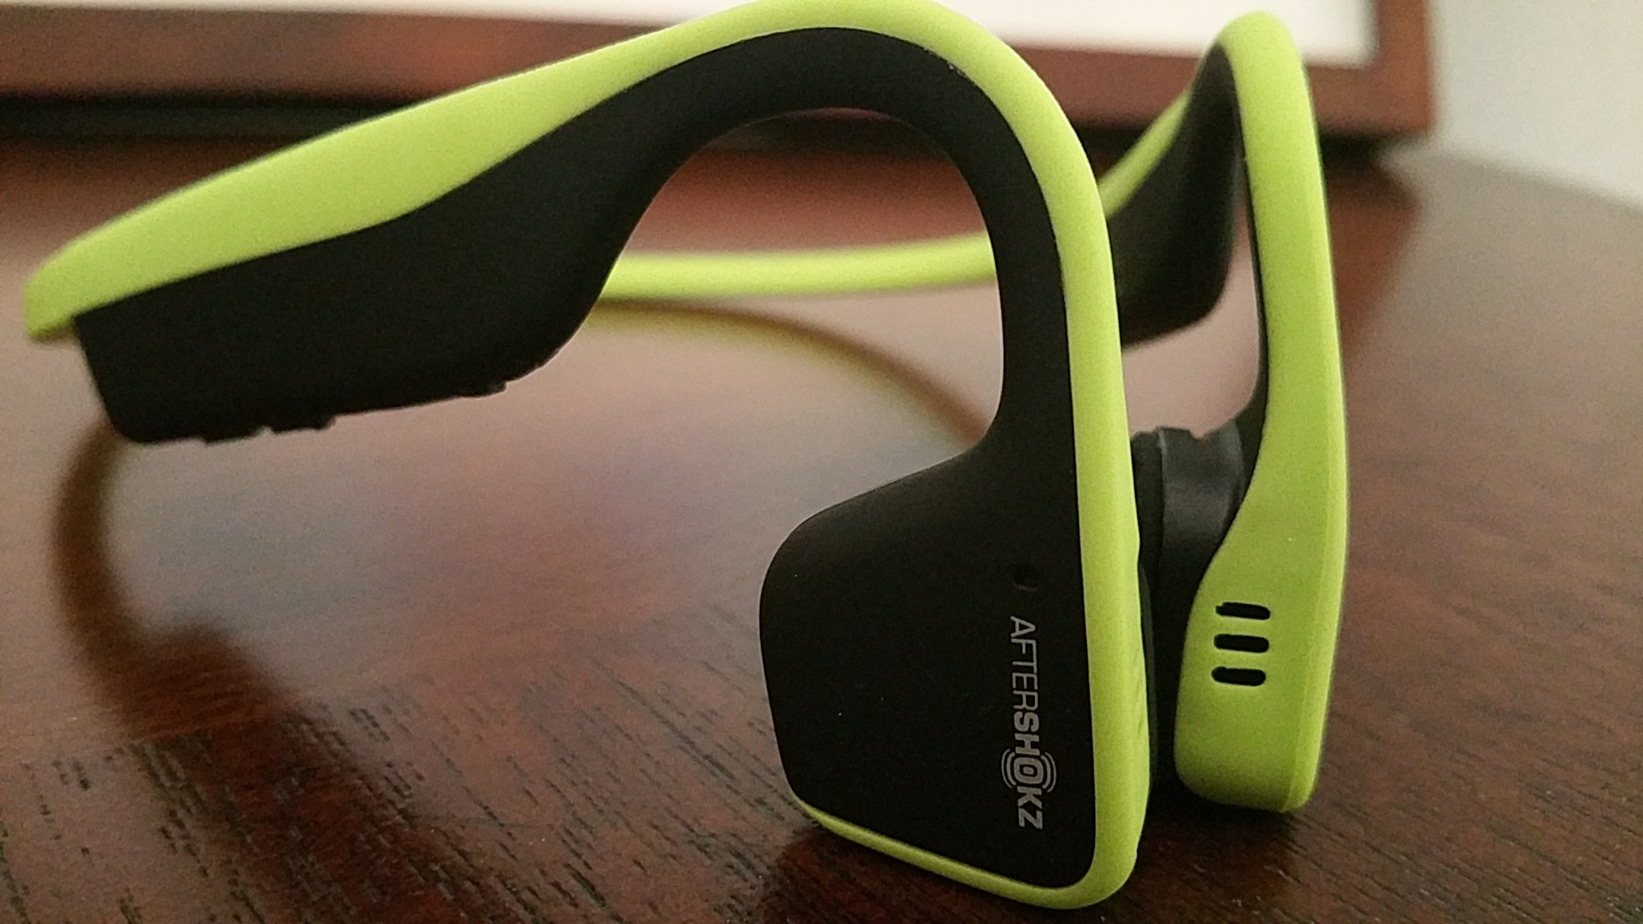 There are benefits of bone conduction headphones but it is good to know if they are safe and how they actually work so you can decide if they are right for you.